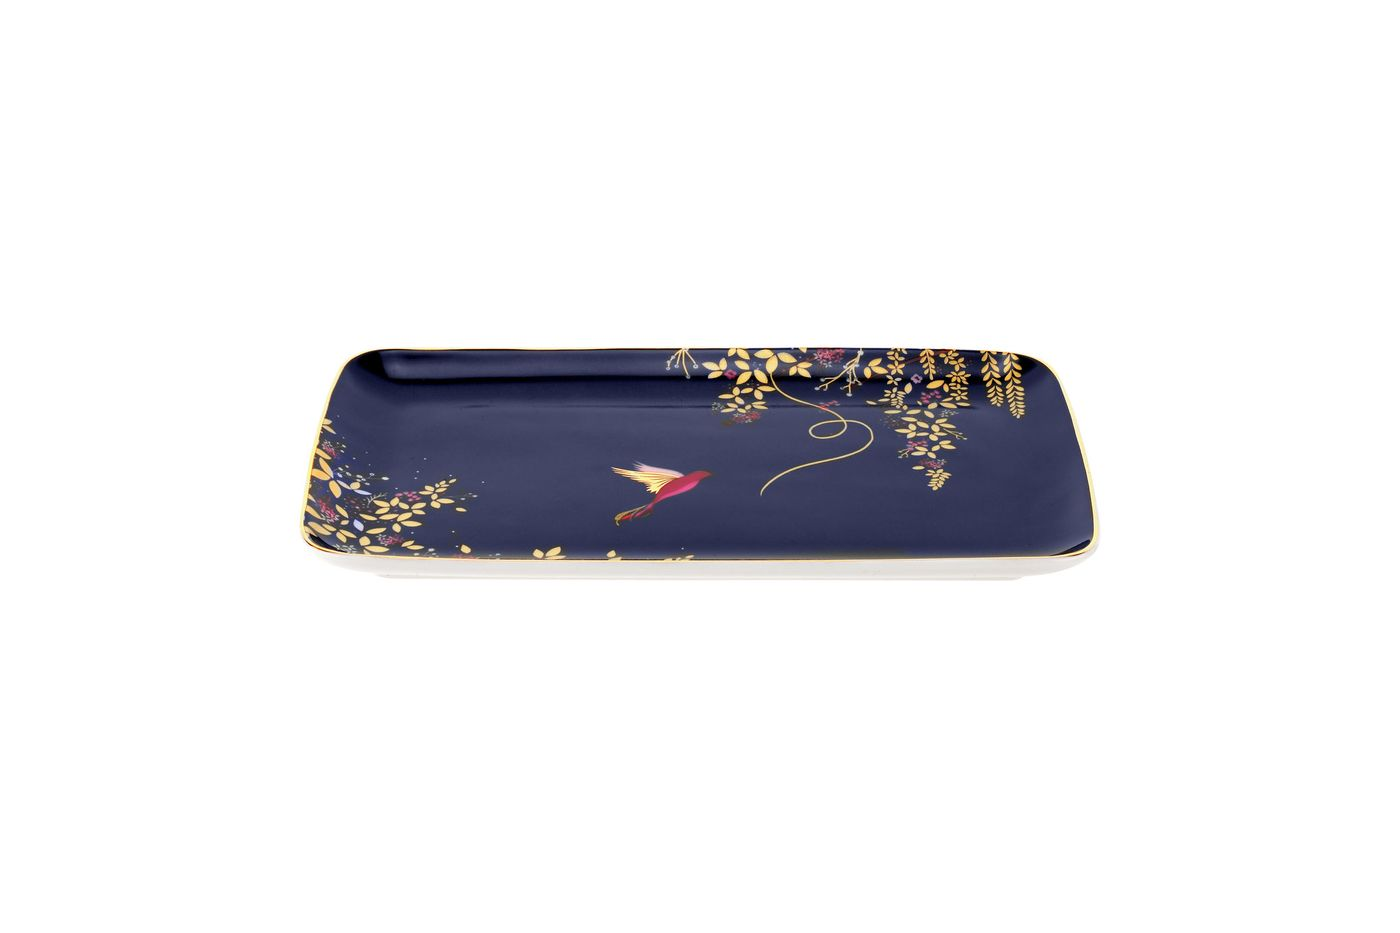 Sara Miller London for Portmeirion Chelsea Collection Trinket Tray 19cm thumb 1